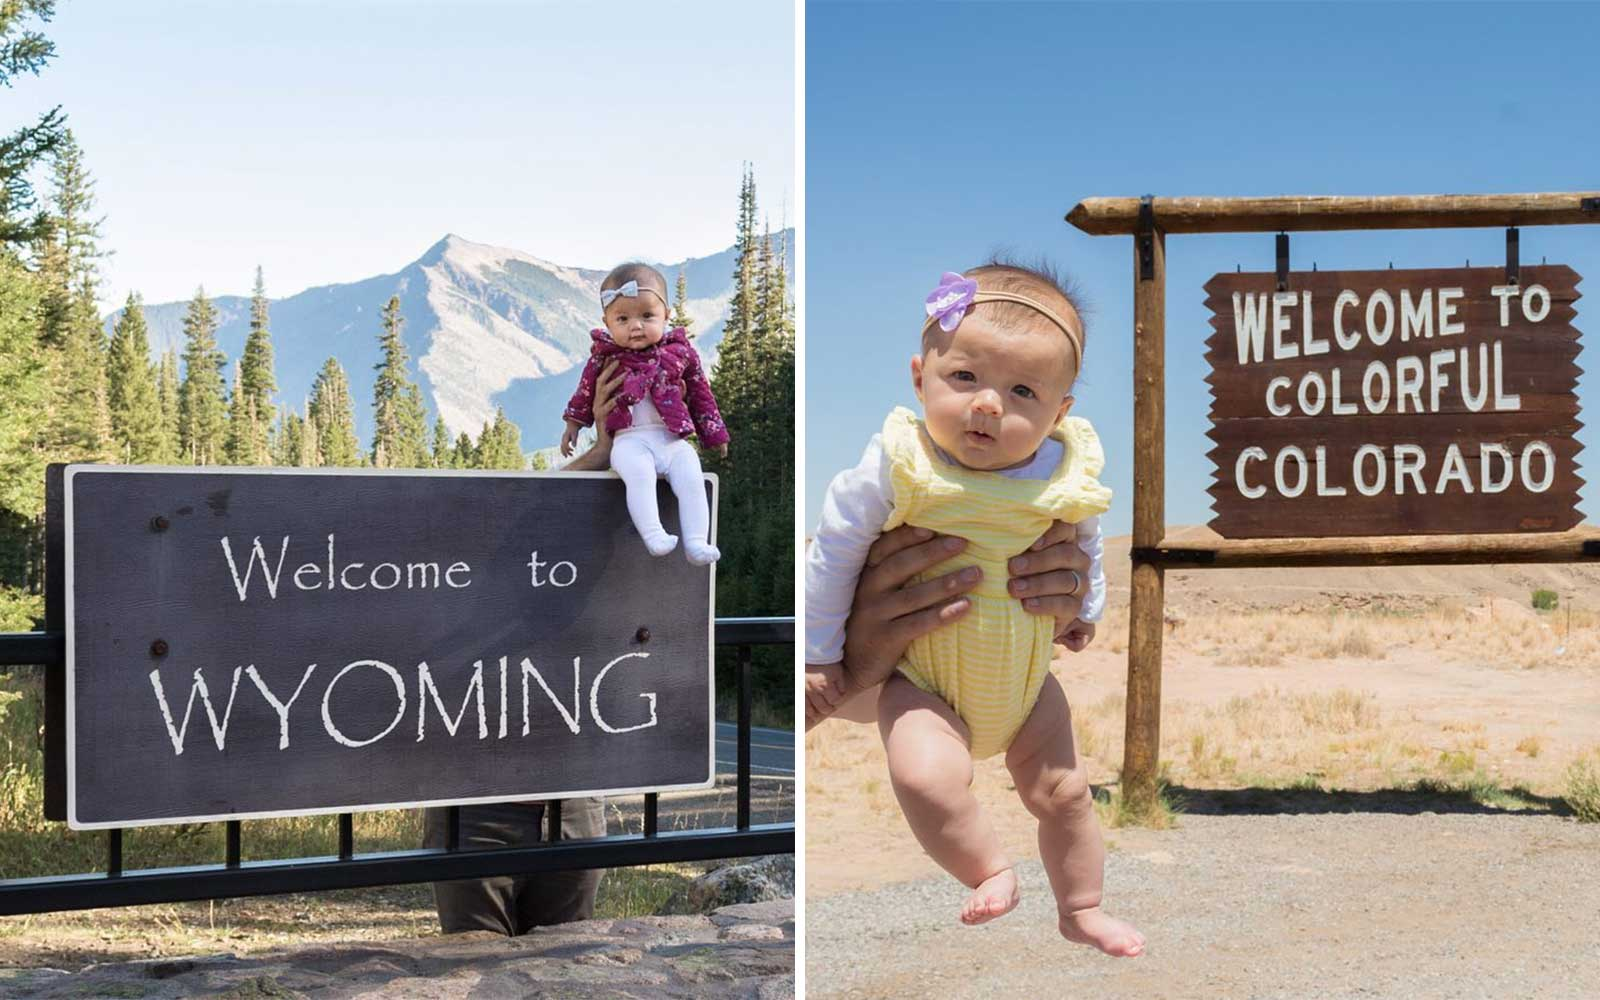 5-month-old May Be the World's Youngest Person to Visit All 50 States in the U.S.